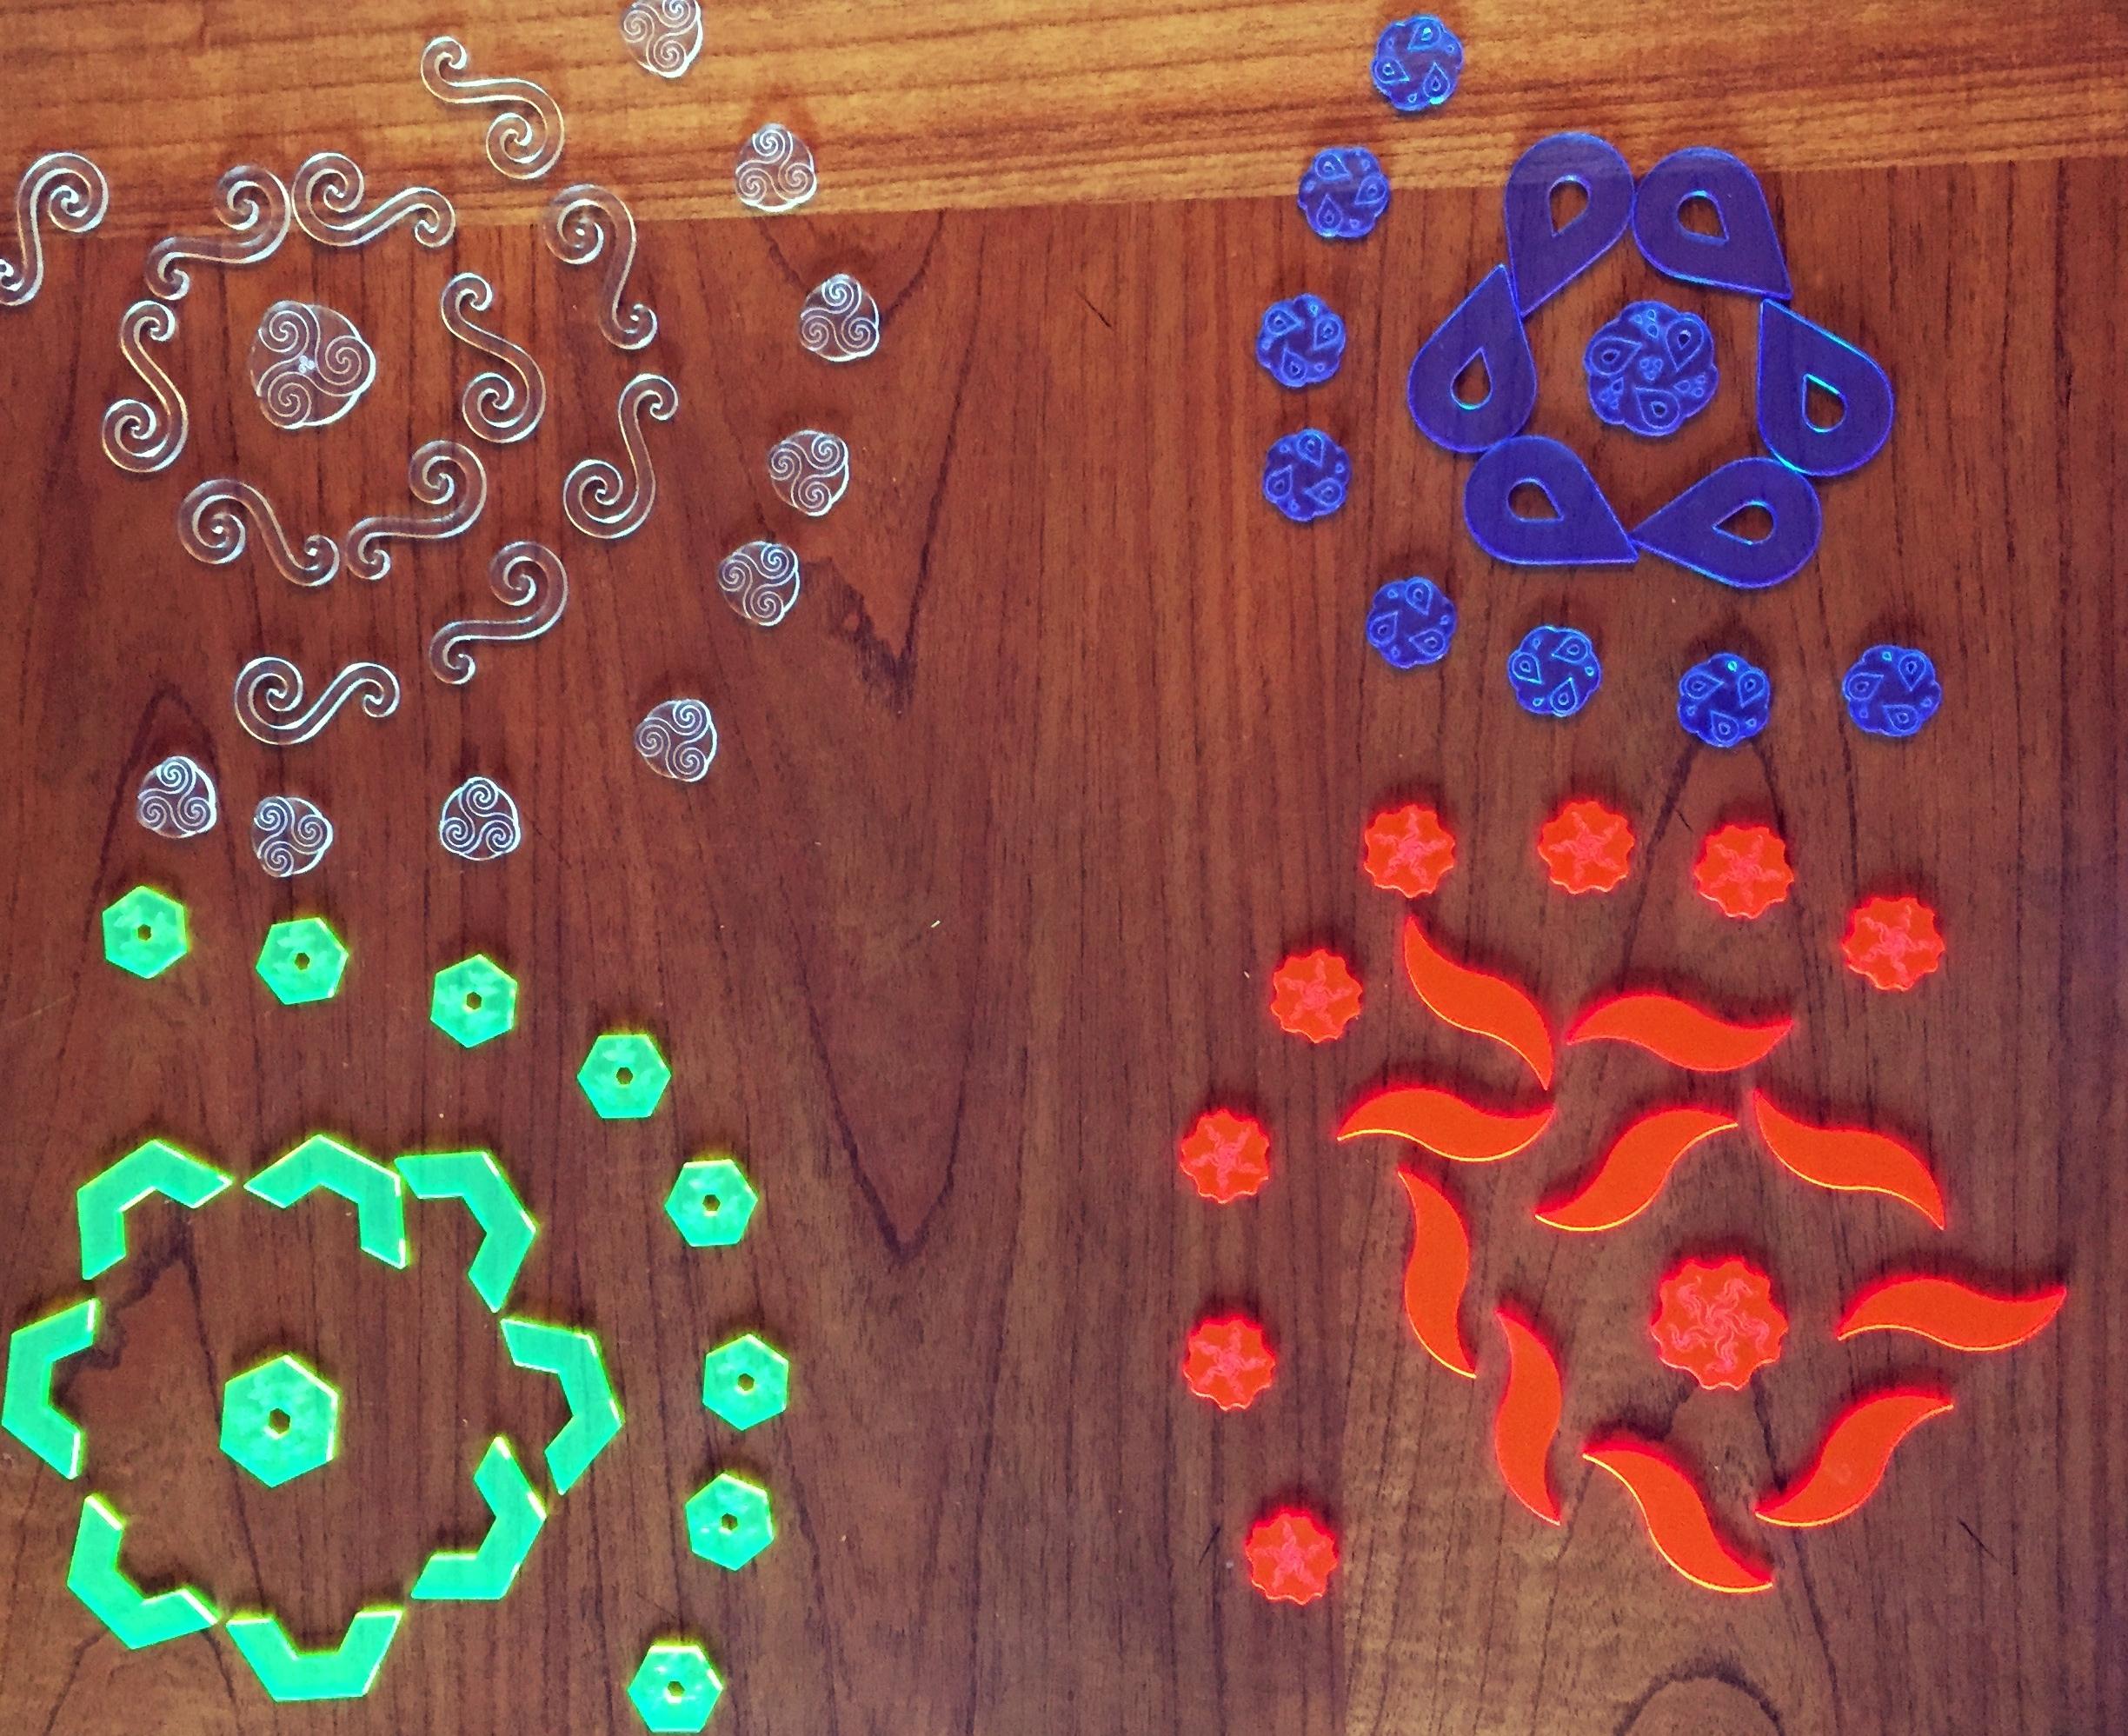 Four Elements Board Game Pieces